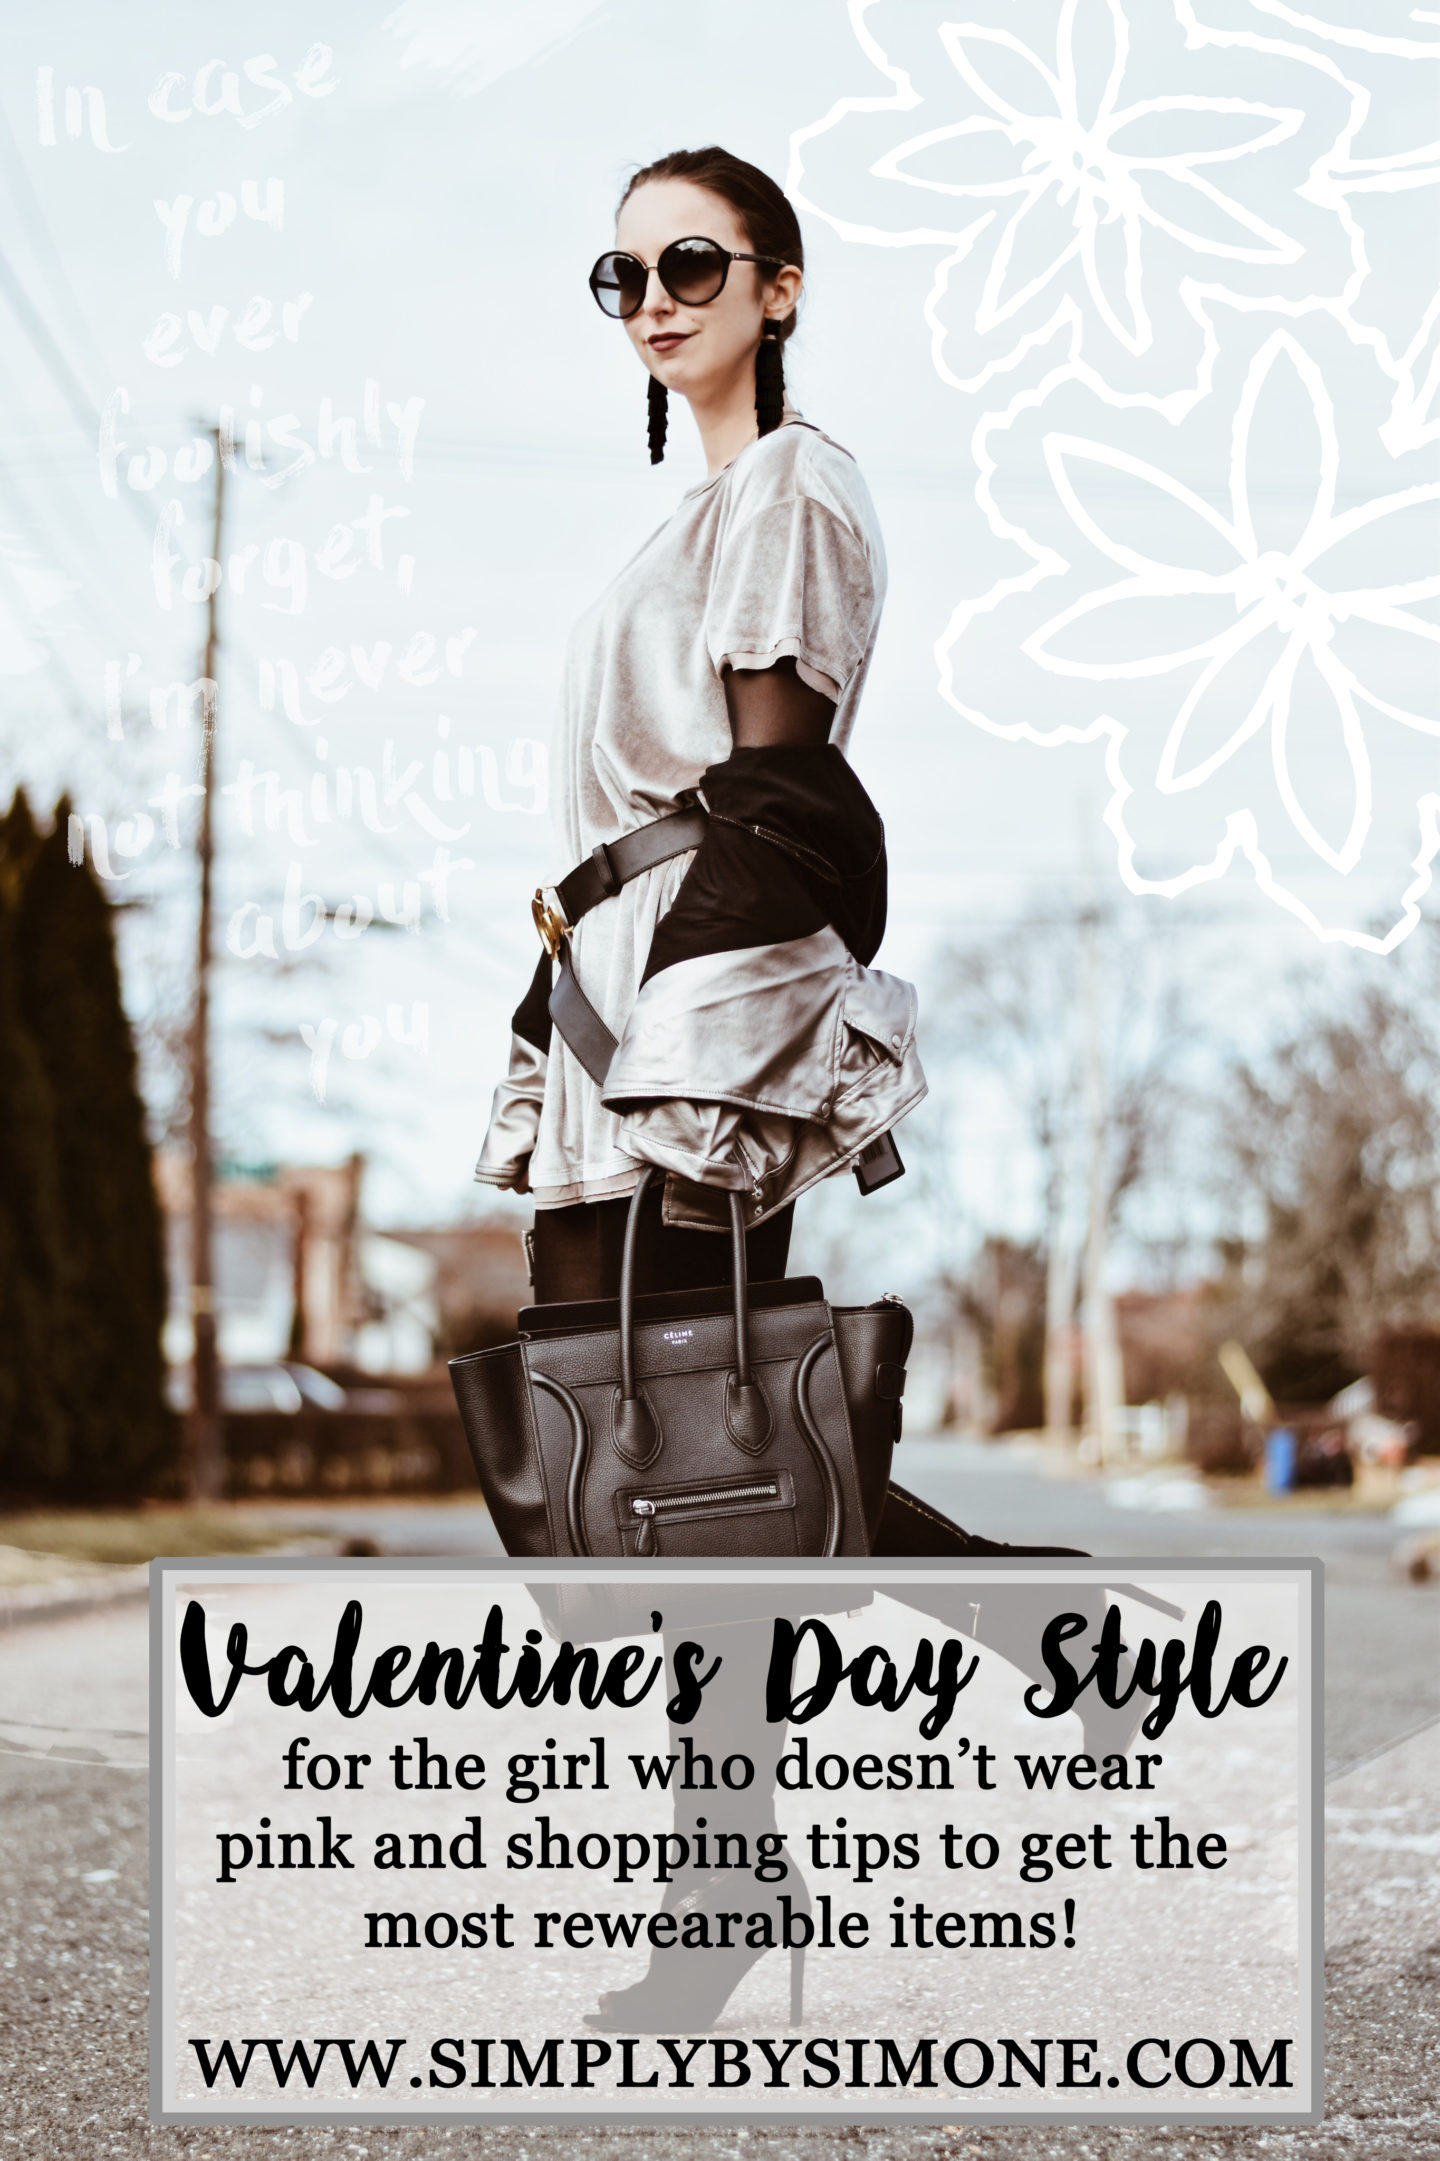 Valentines Day Style That's Not Pink + Shopping Tips!